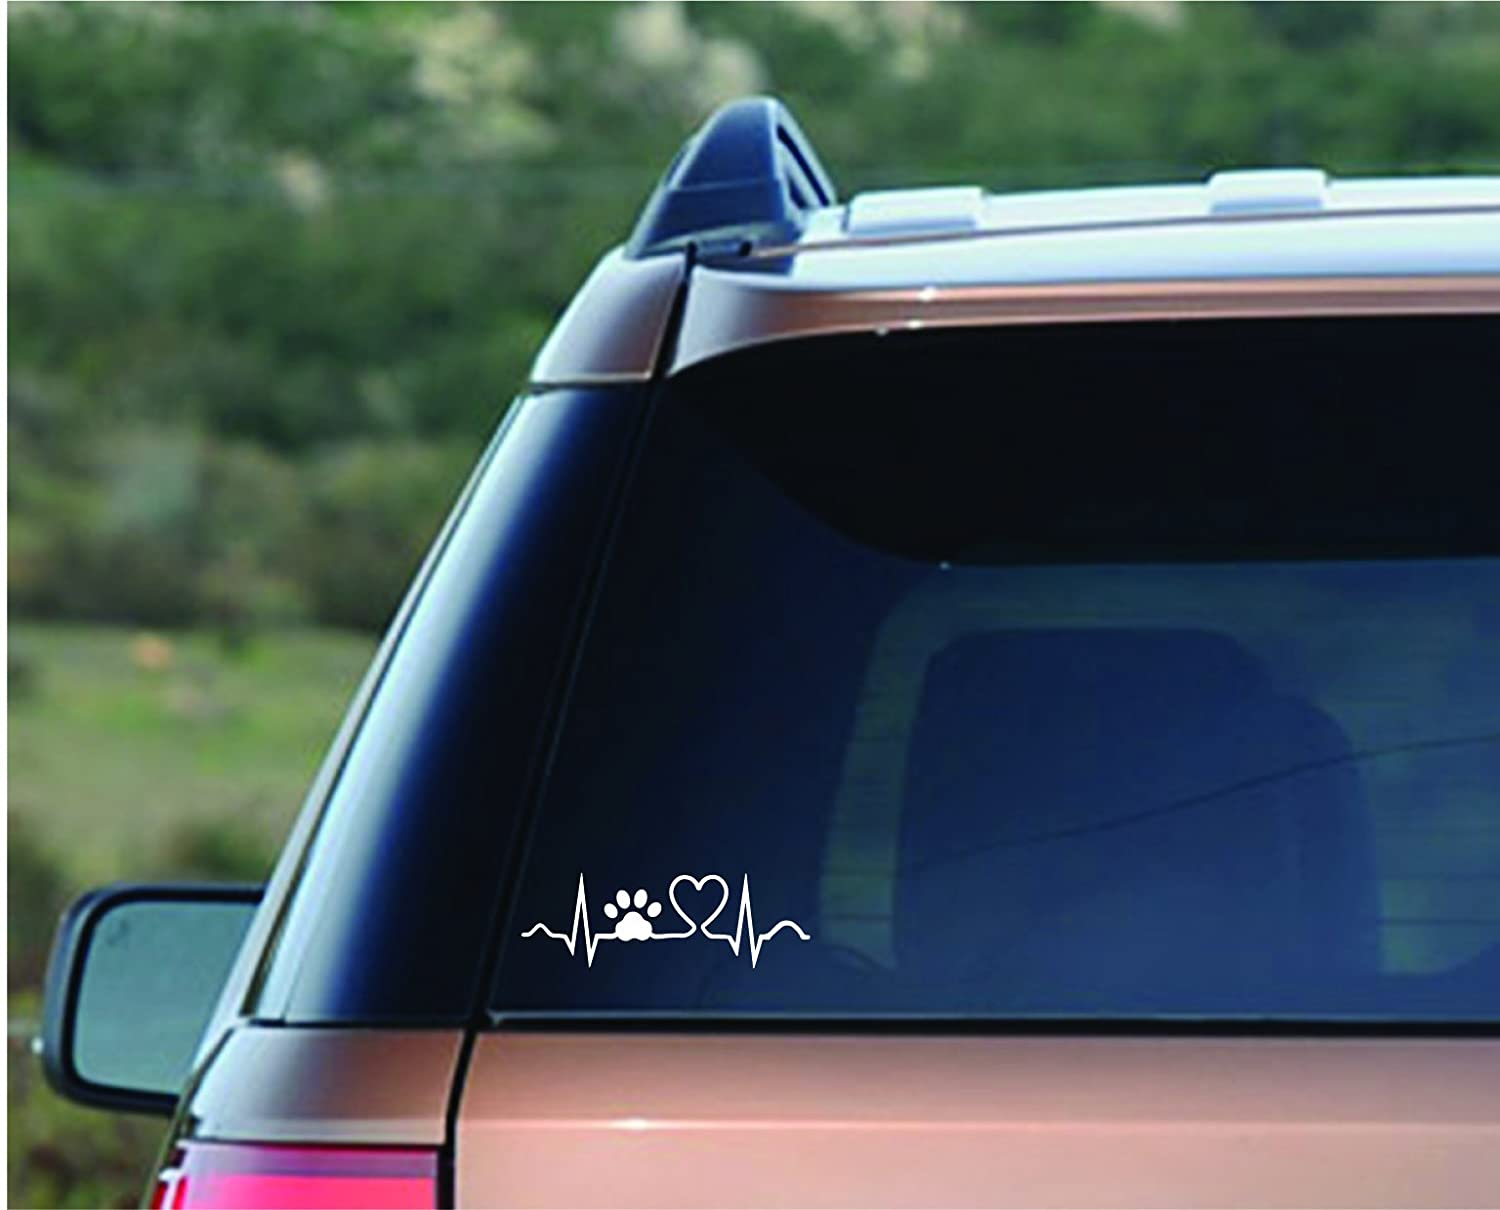 3 designs Peace Heart Paw, Heart Beat Paw, Infinity Symbol Pet Paw 12 decals total Enjoy It Pets Car Sticker Kit